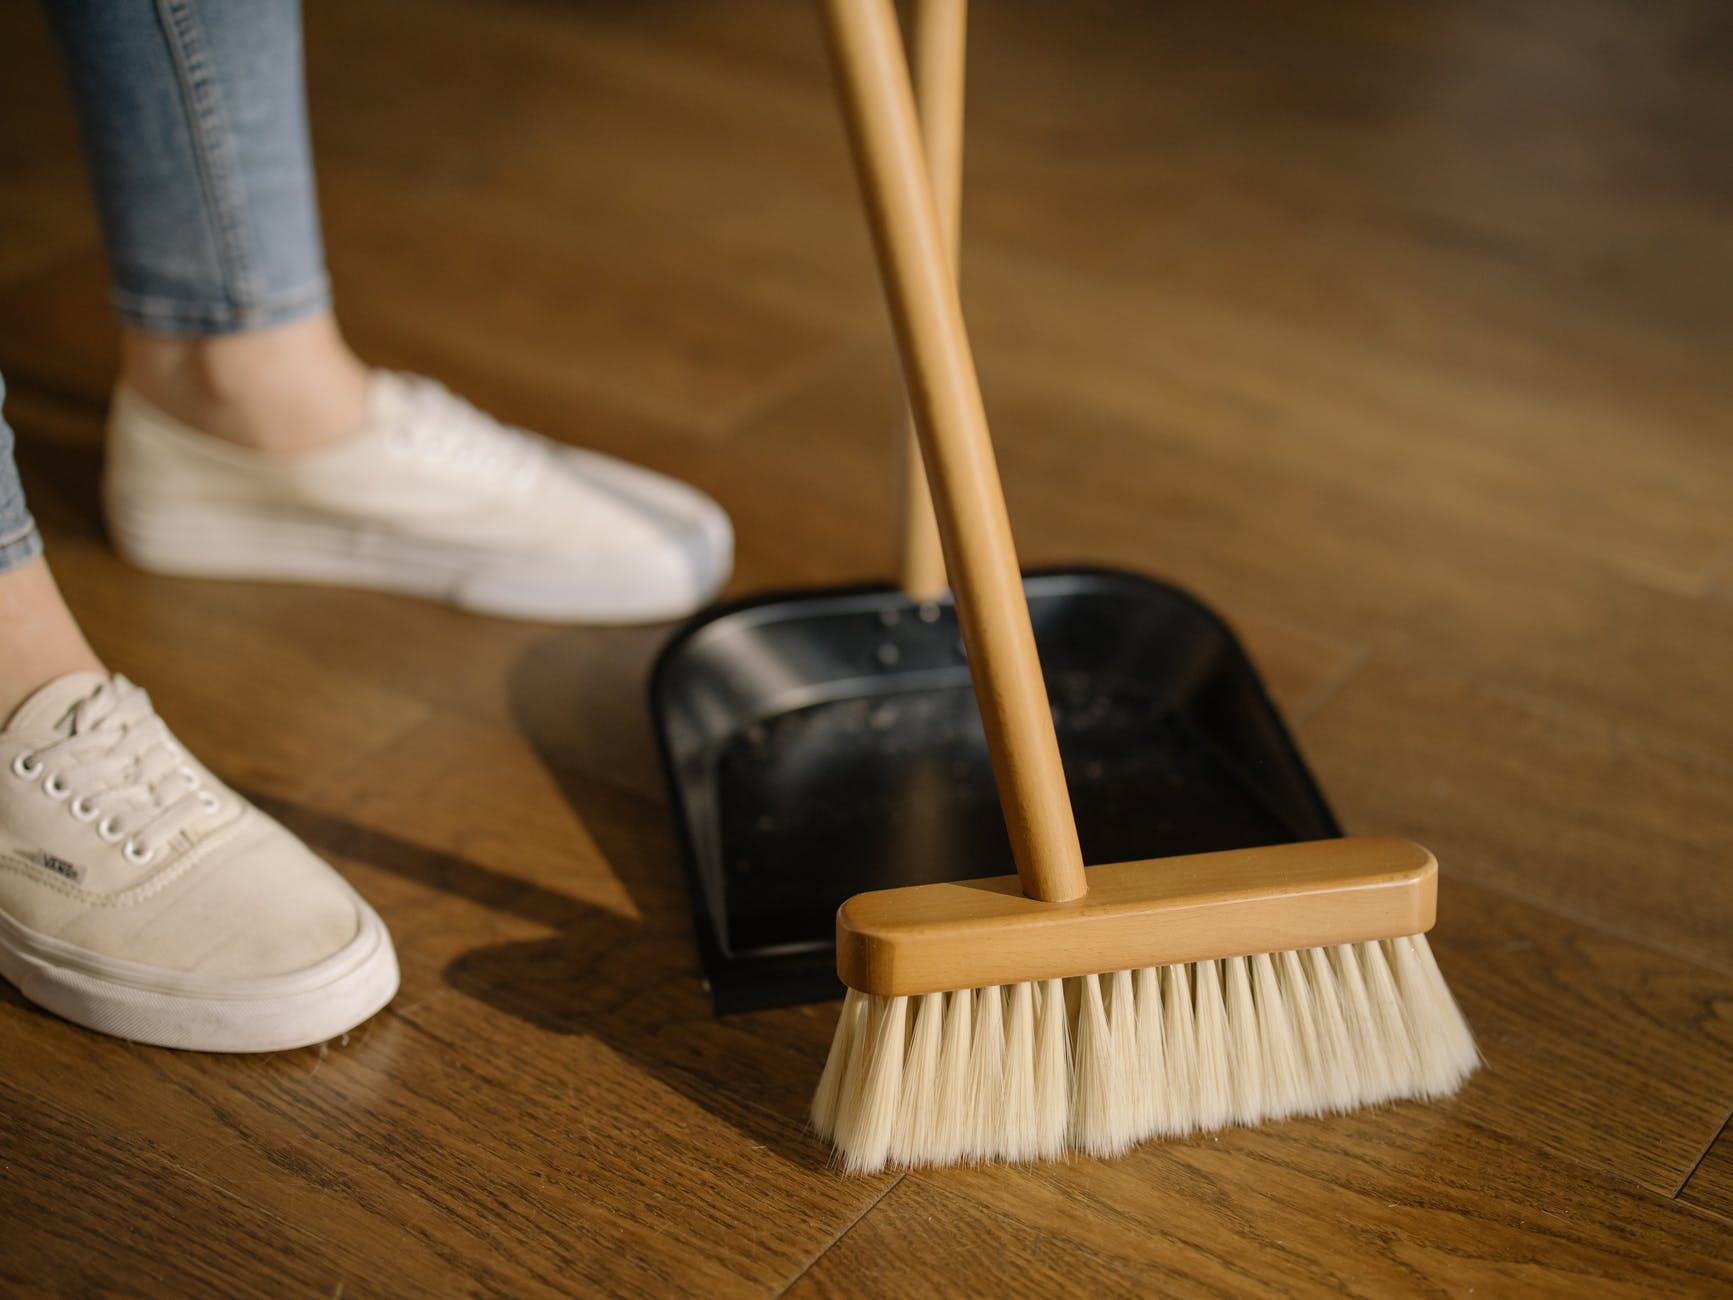 Say goodbye to stains and smells with carpet cleaning tricks